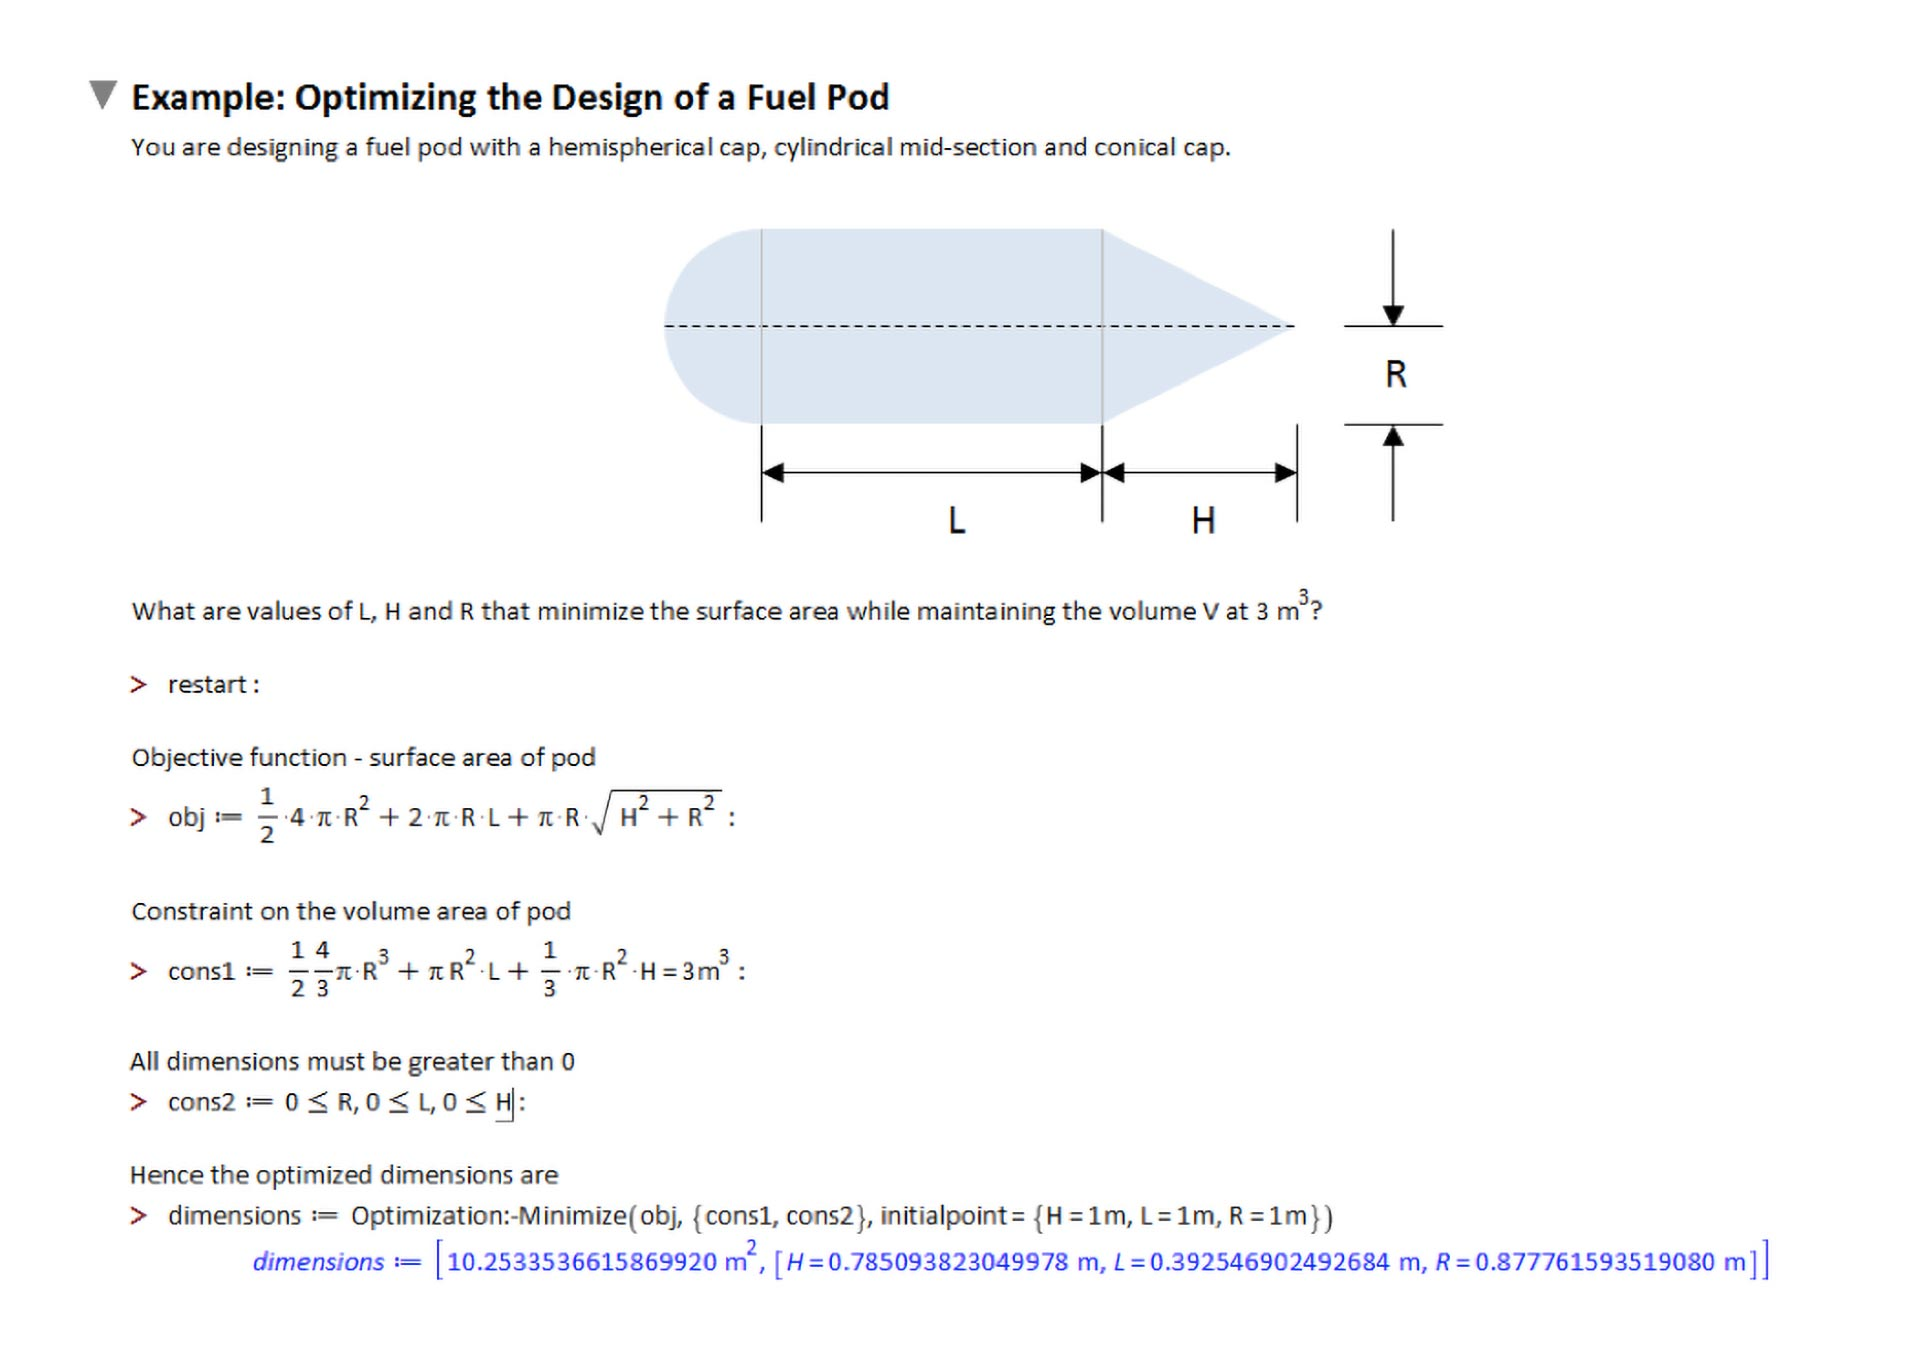 Optimization of a fuel pod